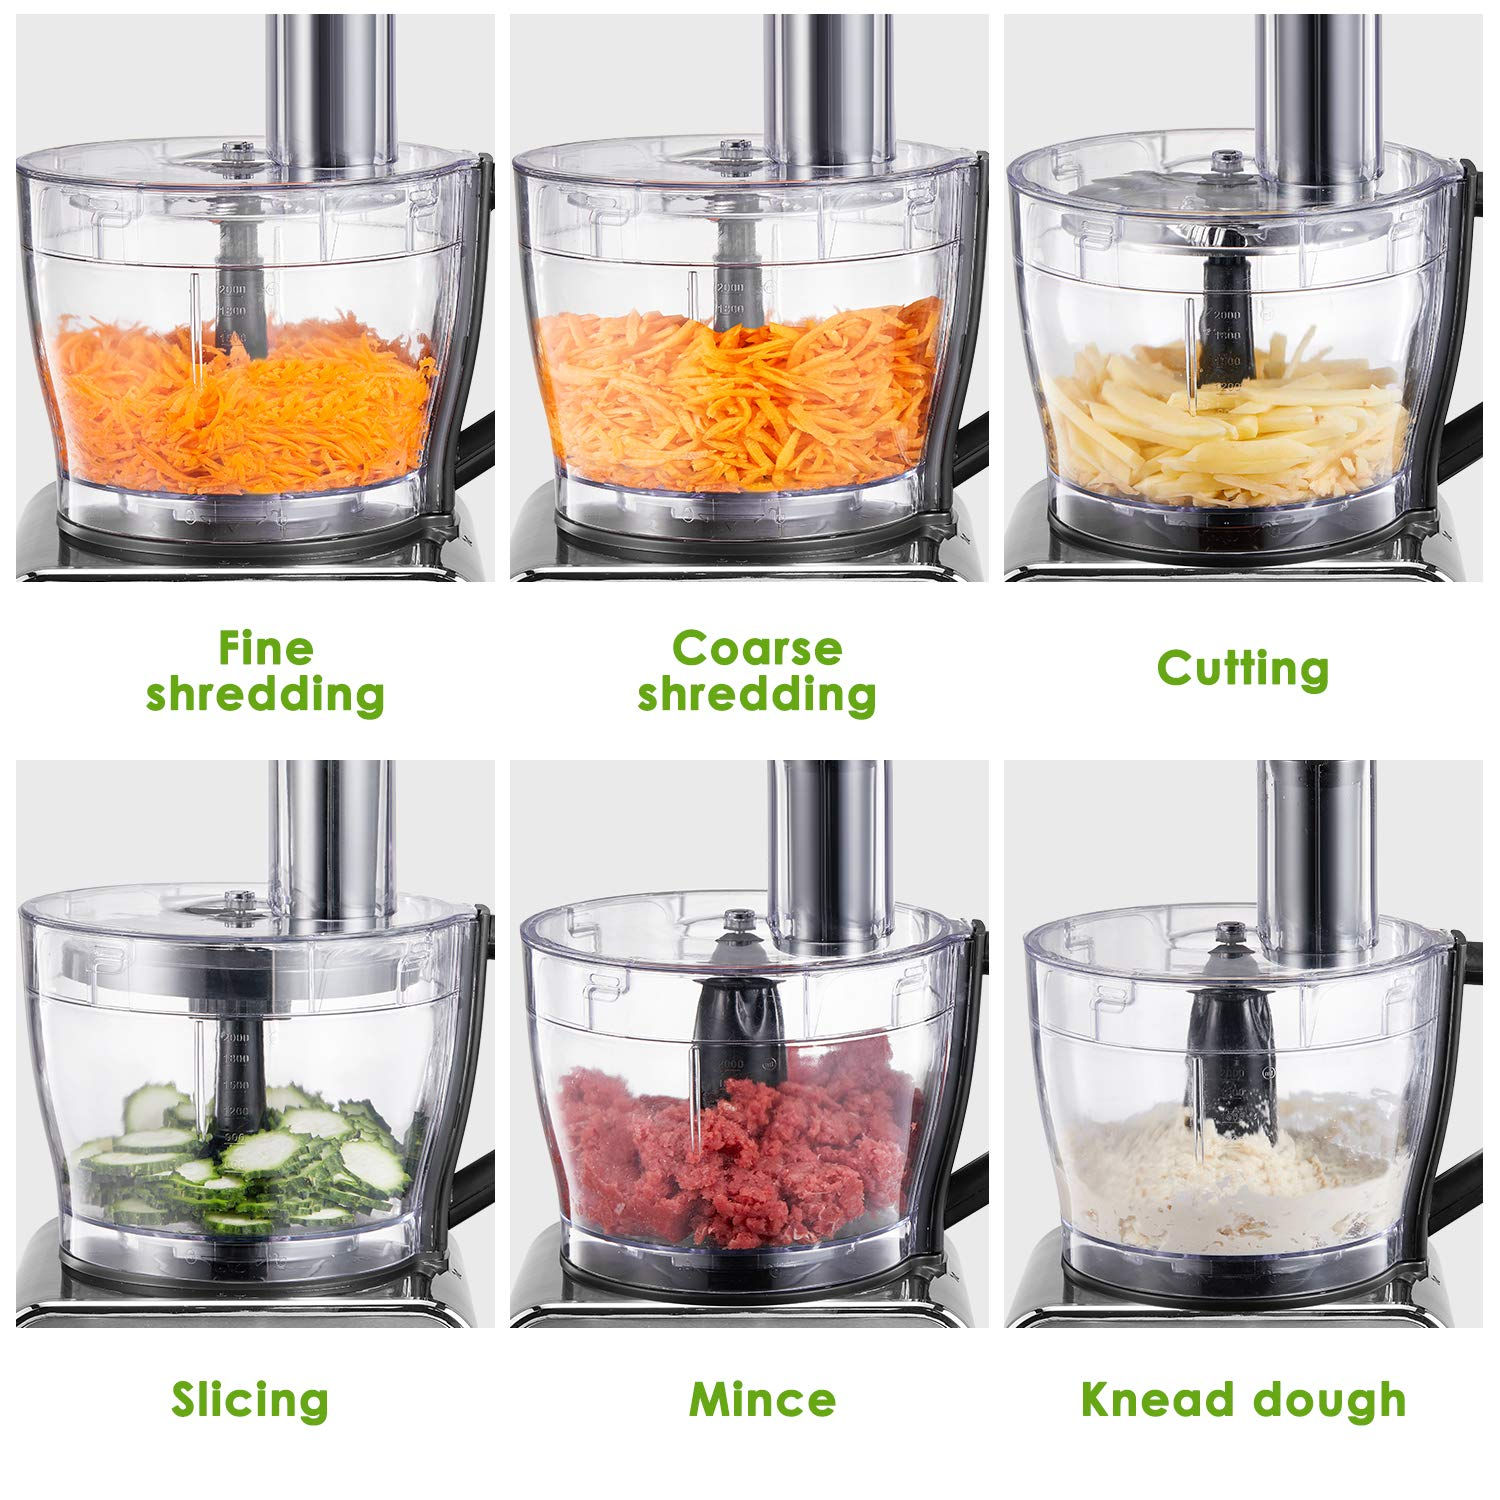 Food Processor 12-Cup, Multi-Function Food Processor 6 Main Functions with Chopper Blade, Dough Blade, Shredder, Slicing Attachments, 3 Speed 600W Powerful Processor, Silver by Tibek (Image #2)